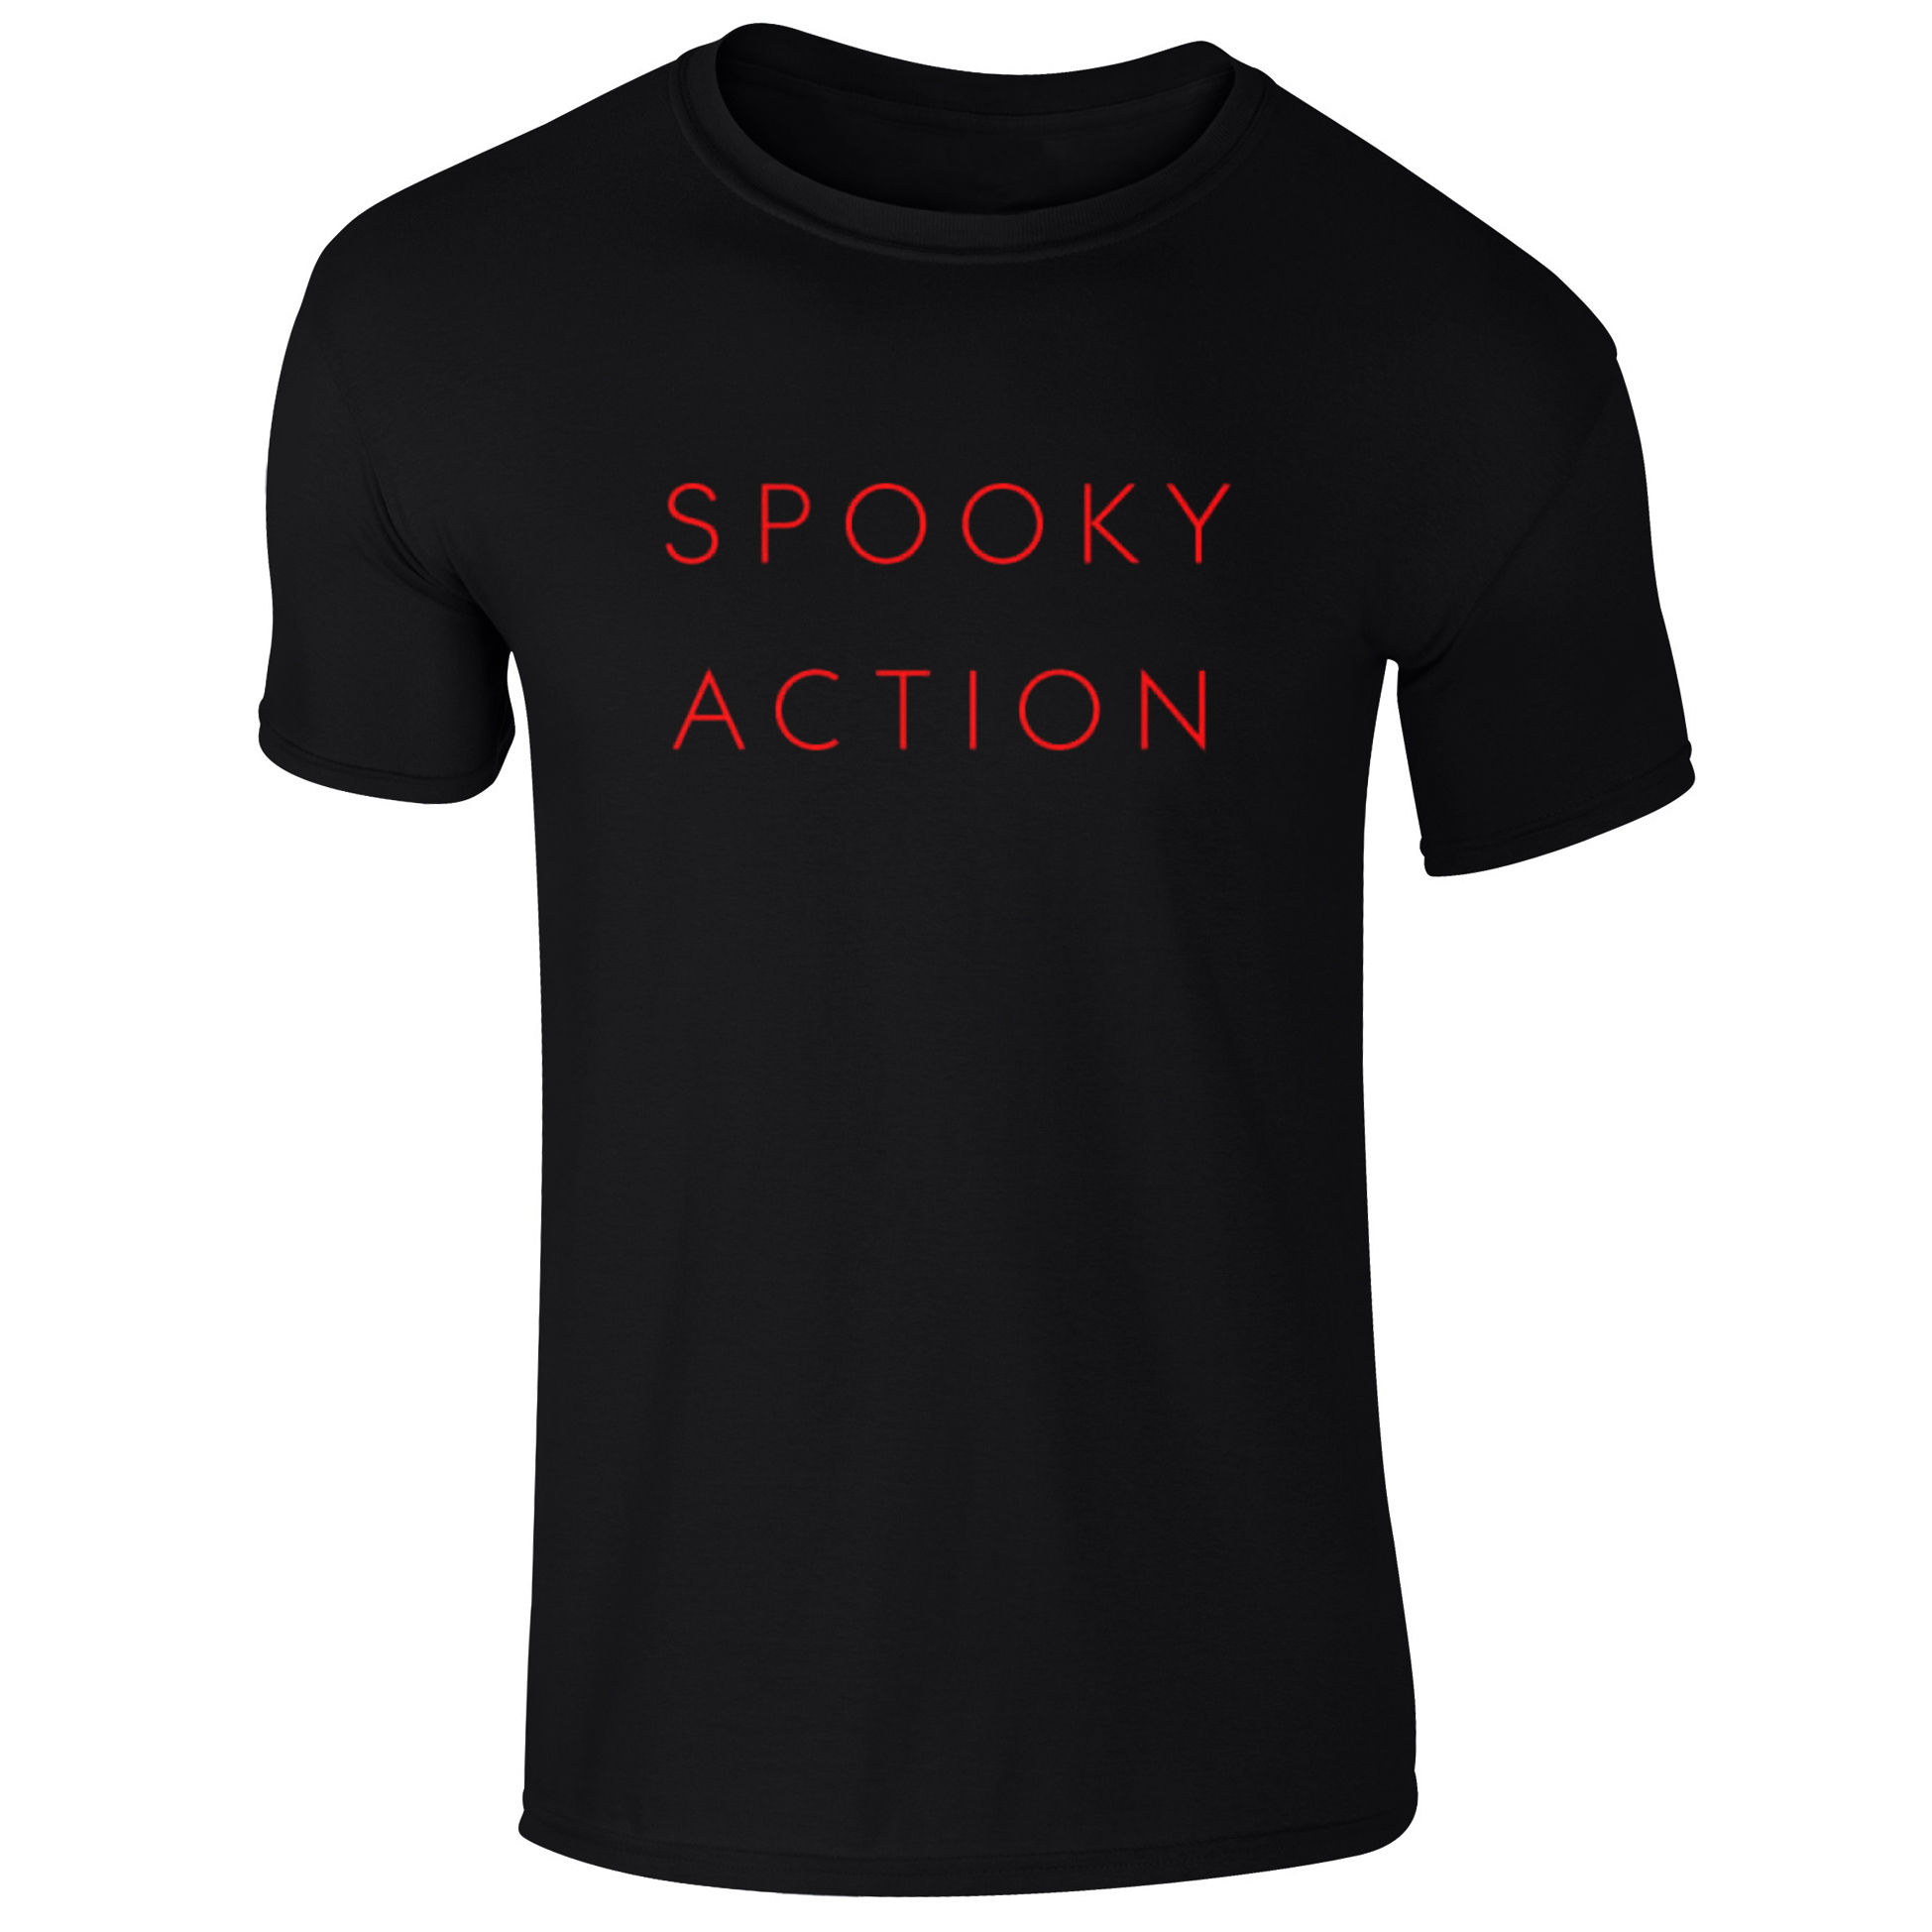 Black t shirt back and front plain - The Spooky Action T Shirt Features Features Red Lettering And A Plain Back